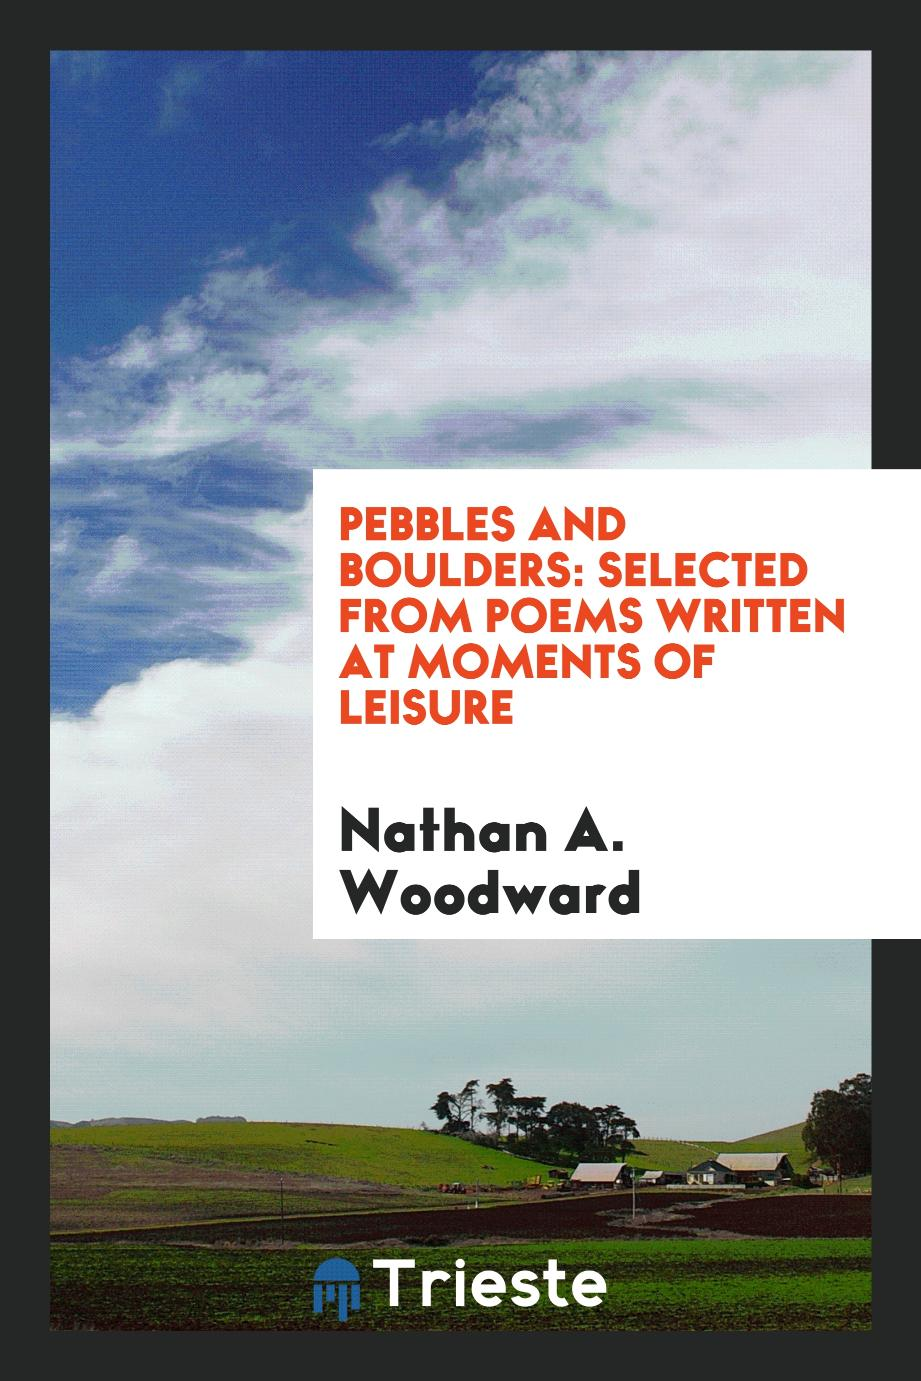 Pebbles and Boulders: Selected from Poems Written at Moments of Leisure